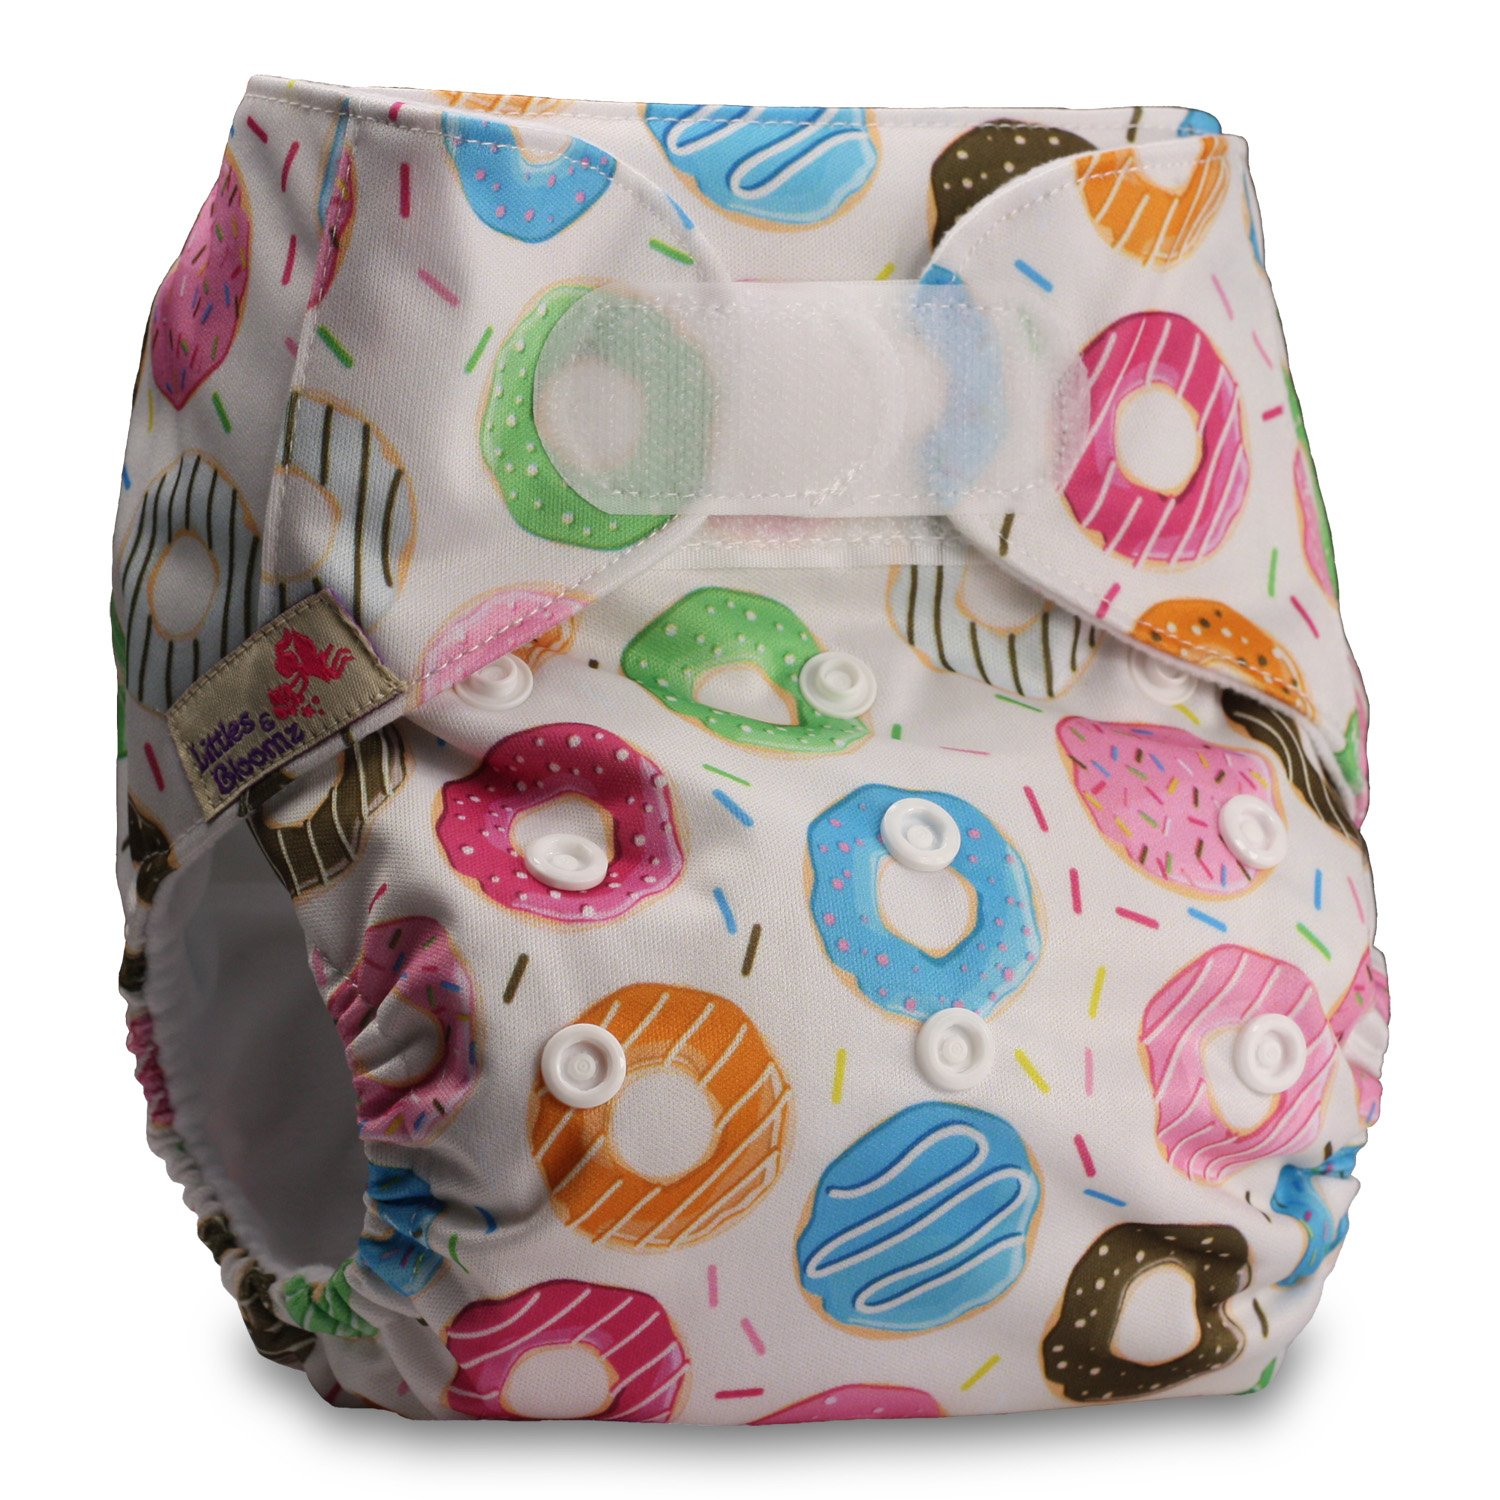 Littles & Bloomz, Reusable Pocket Cloth Nappy, Fastener: Hook-Loop, Set of 1, Pattern 18, With 2 Bamboo Inserts